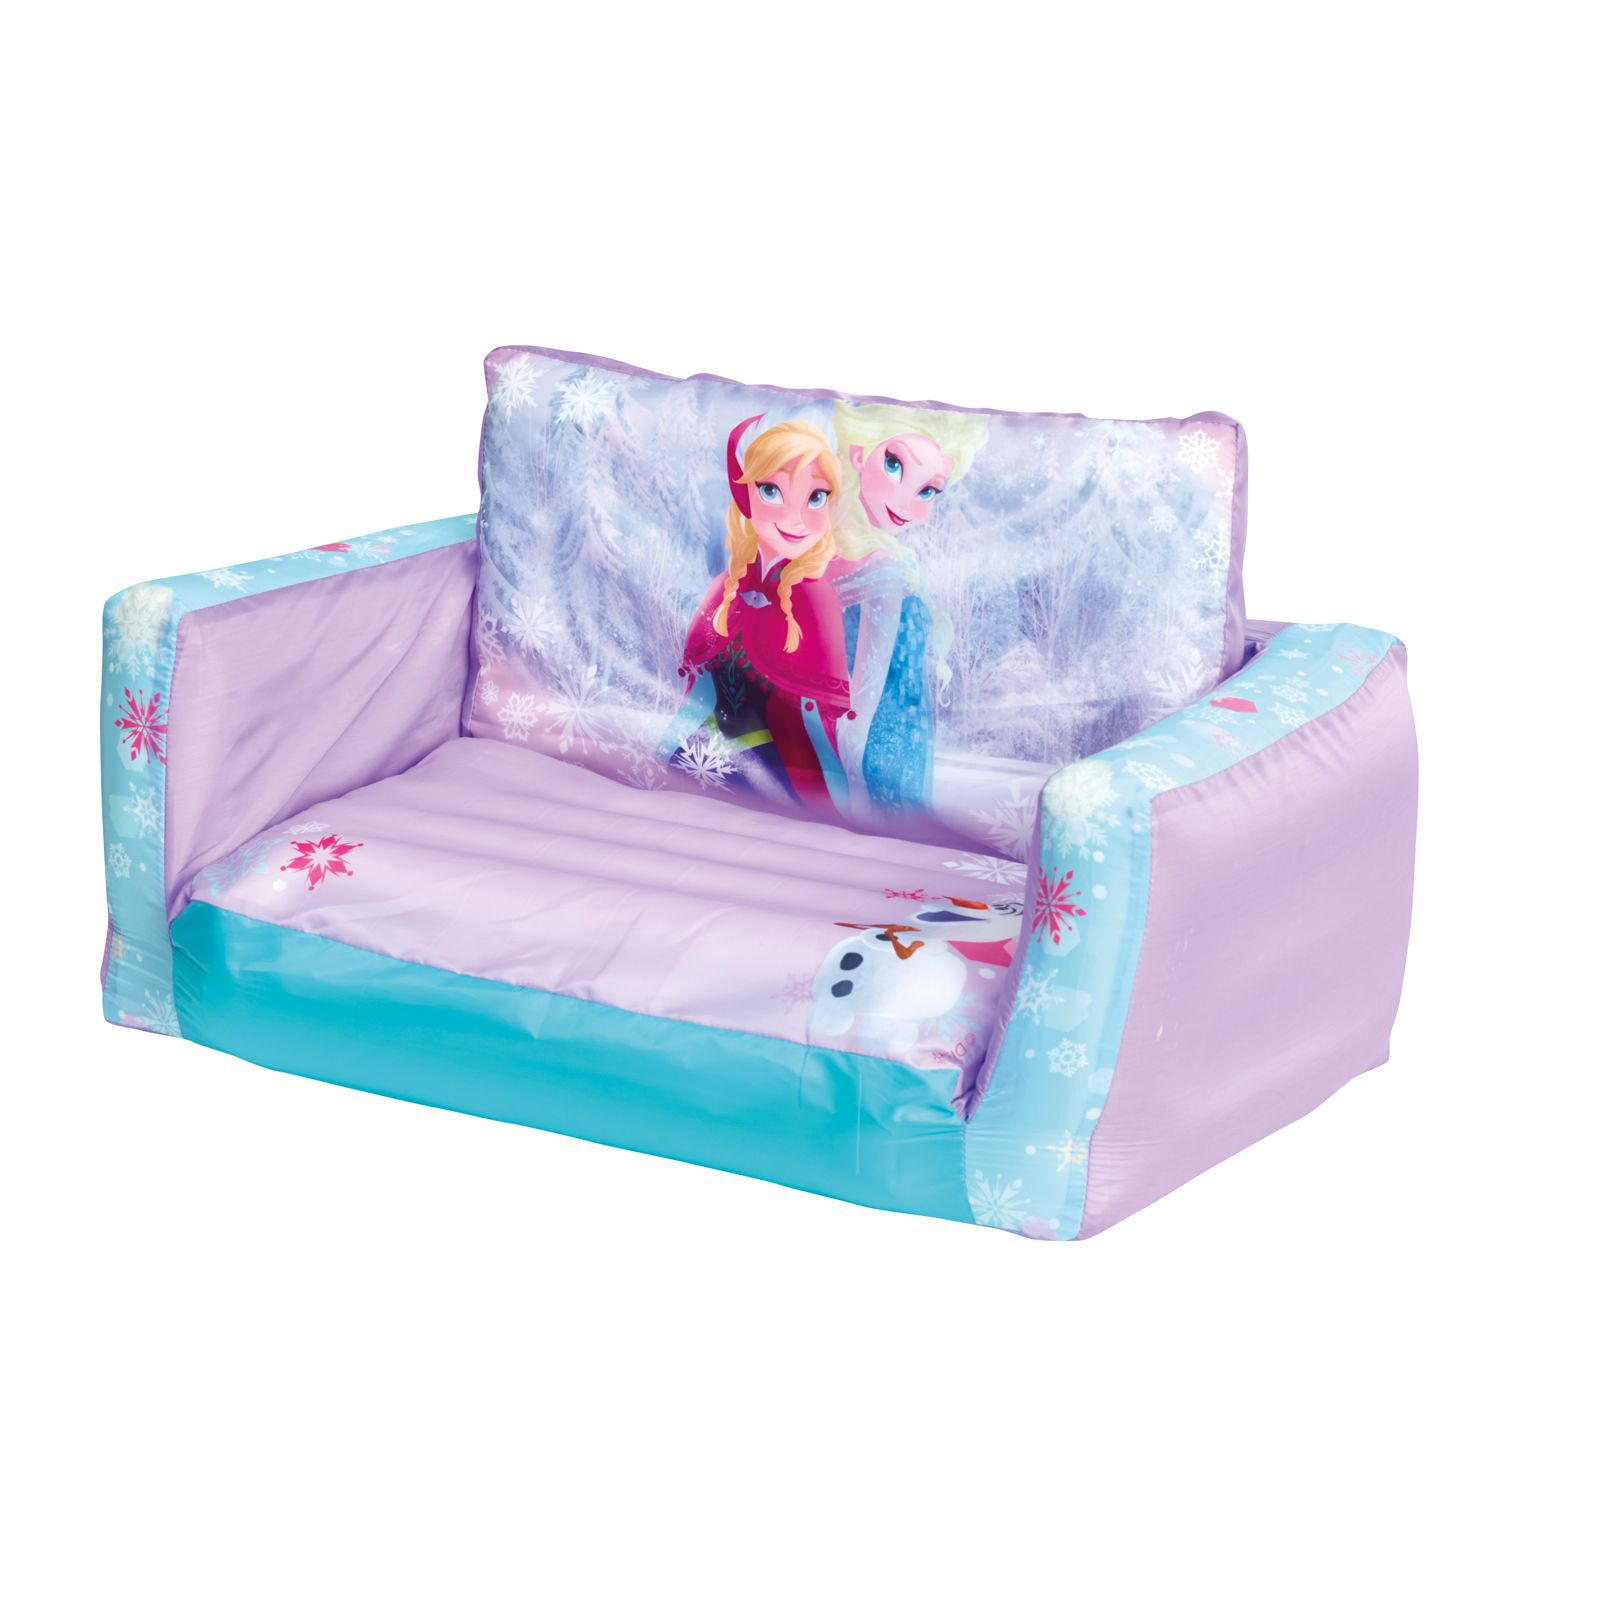 Ebay Sofa Pink Details About Disney Frozen Flip Out Sofa Sofa Bed New Inflatable